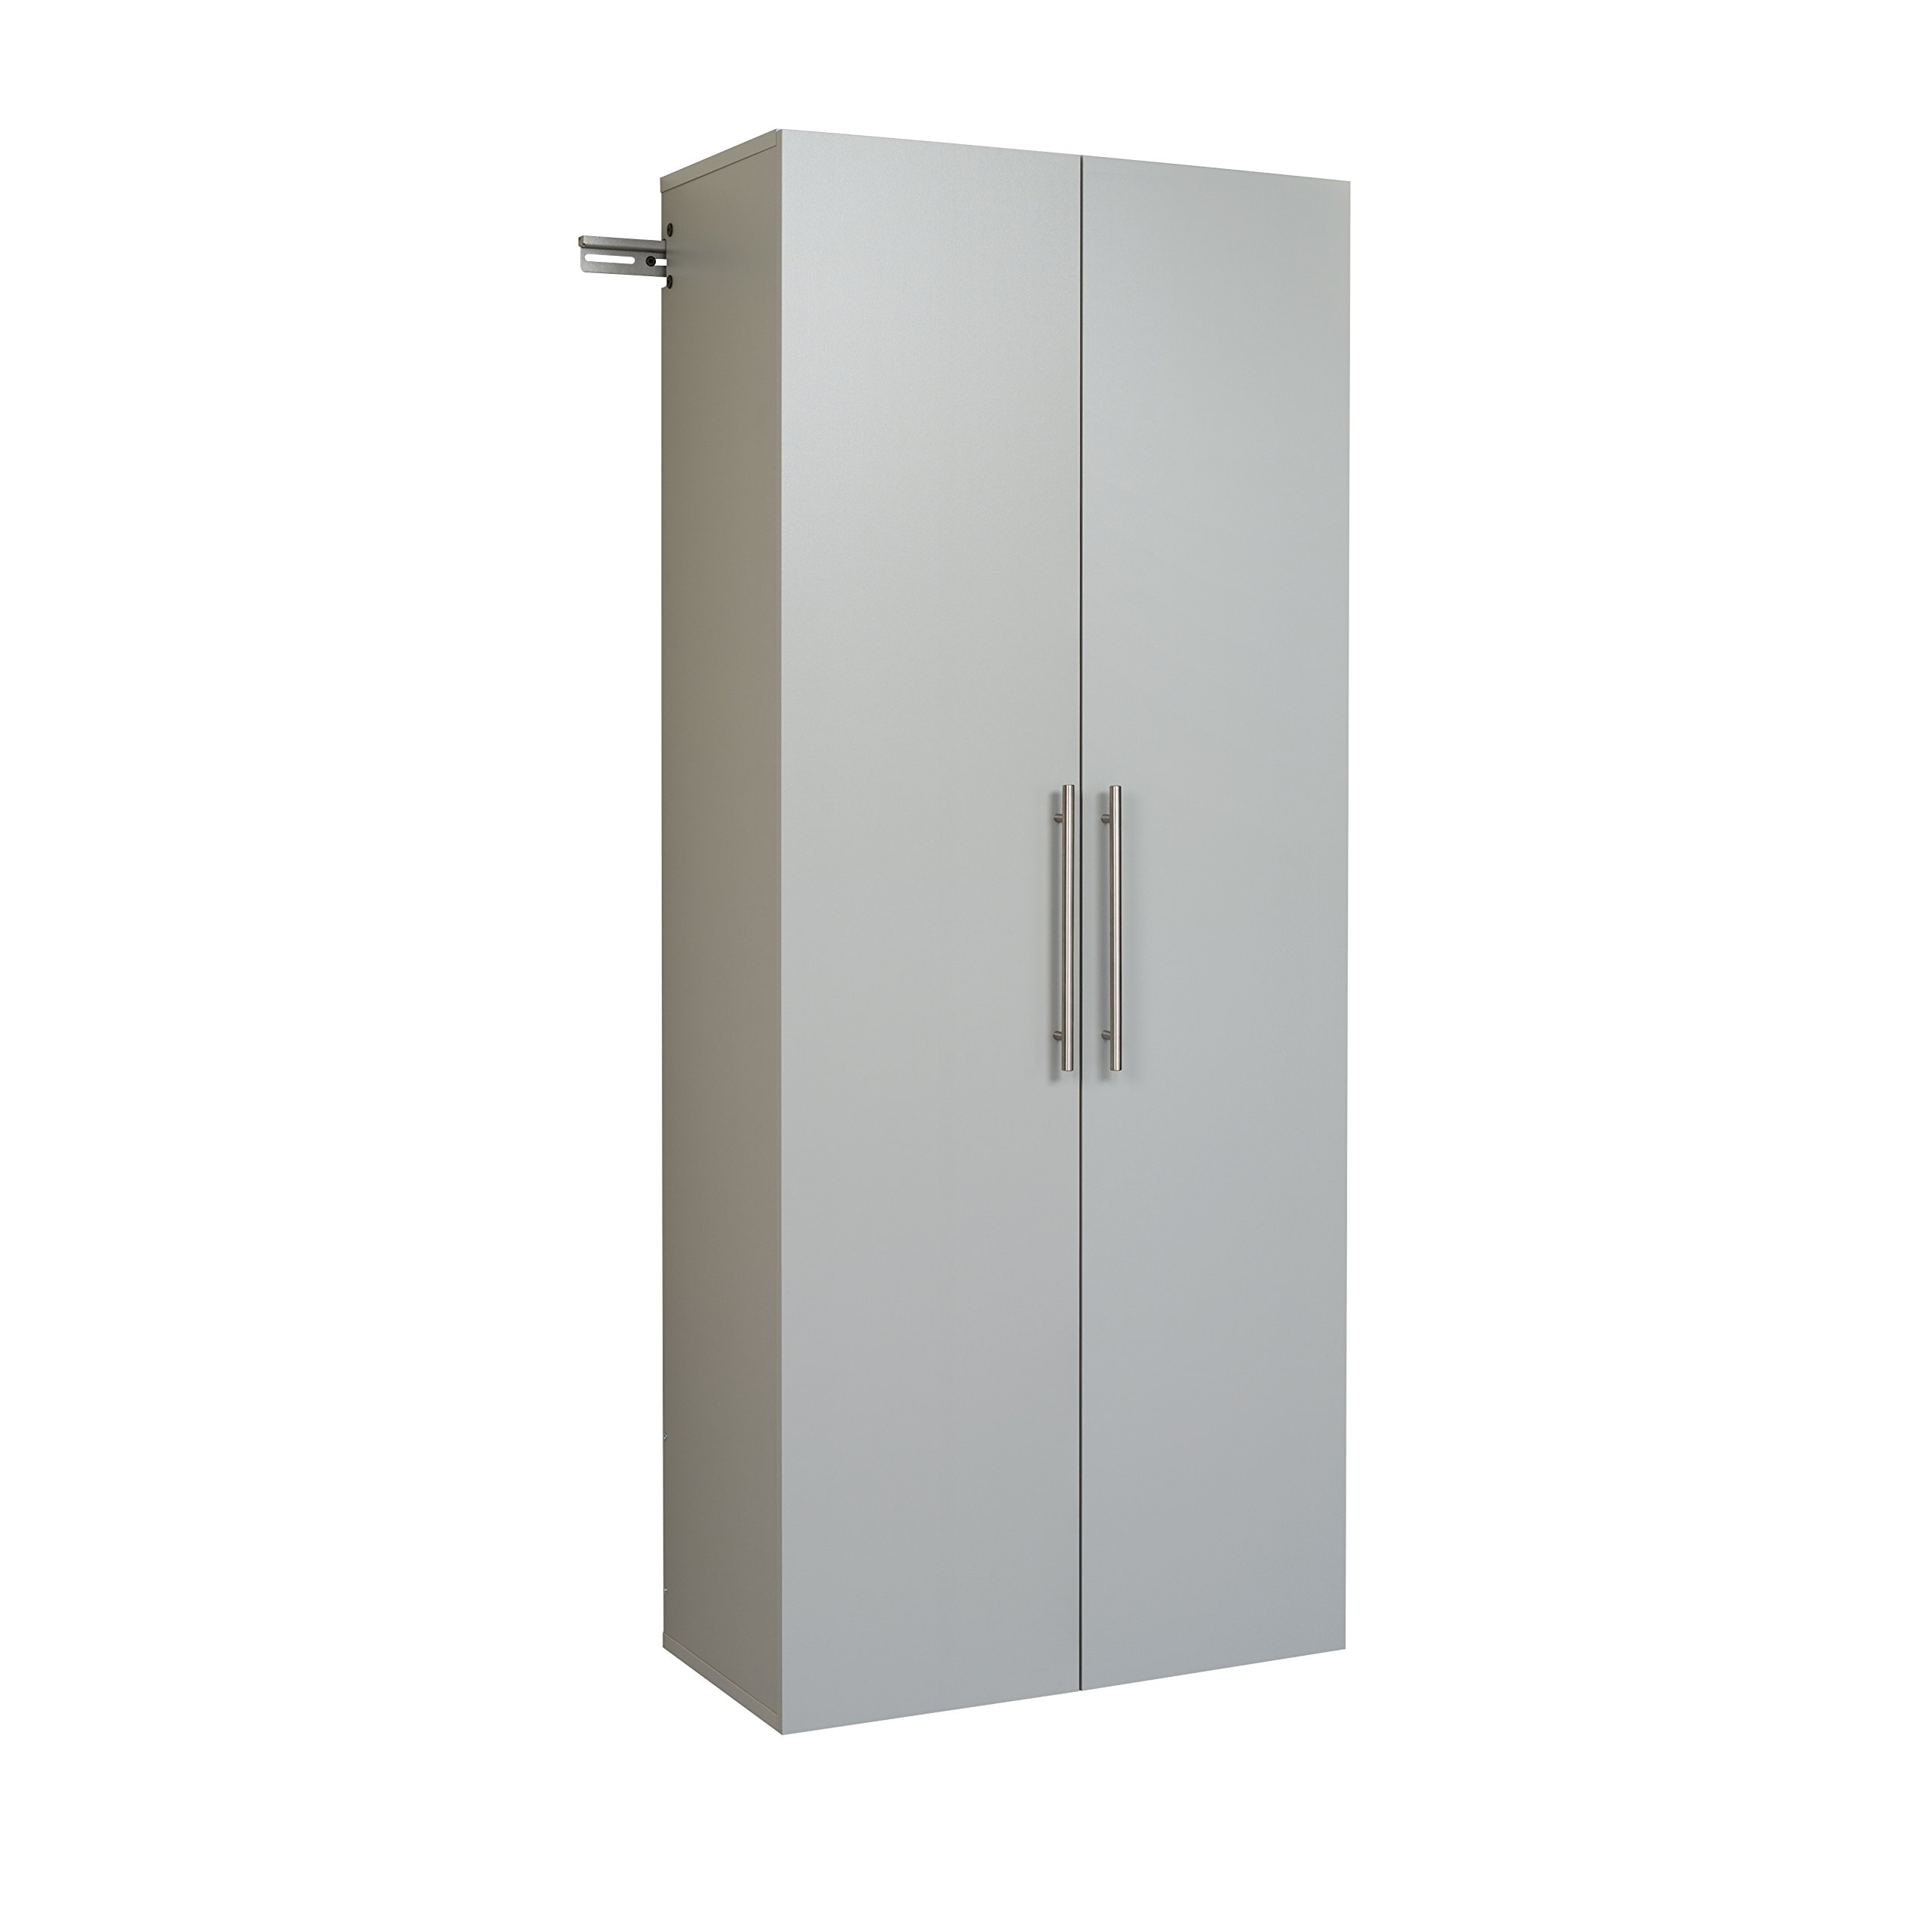 Prepac GSCW-0707-2K Hang-Ups Storage Cabinet, 30''/Large, Light Gray by Prepac